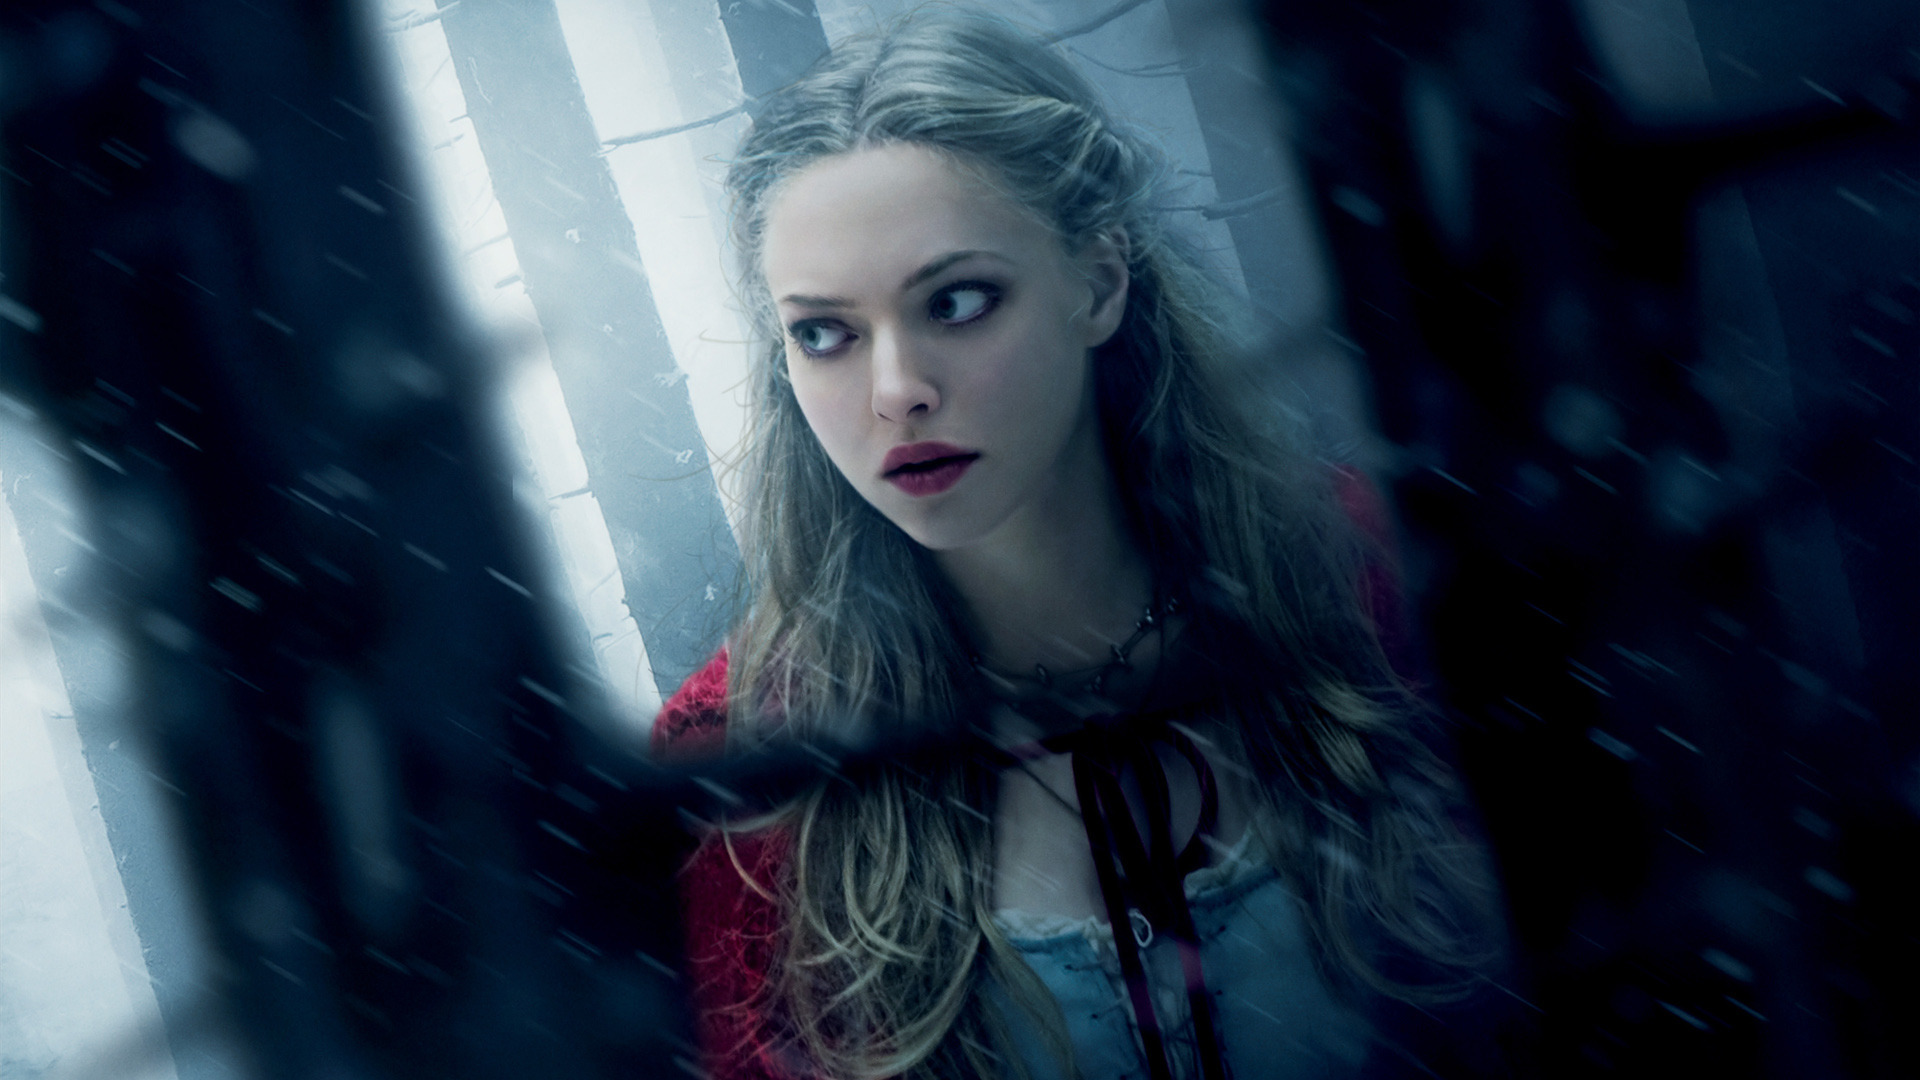 Amanda Seyfried - Amanda Seyfried Wallpaper (34529514) - Fanpop Amanda Seyfried